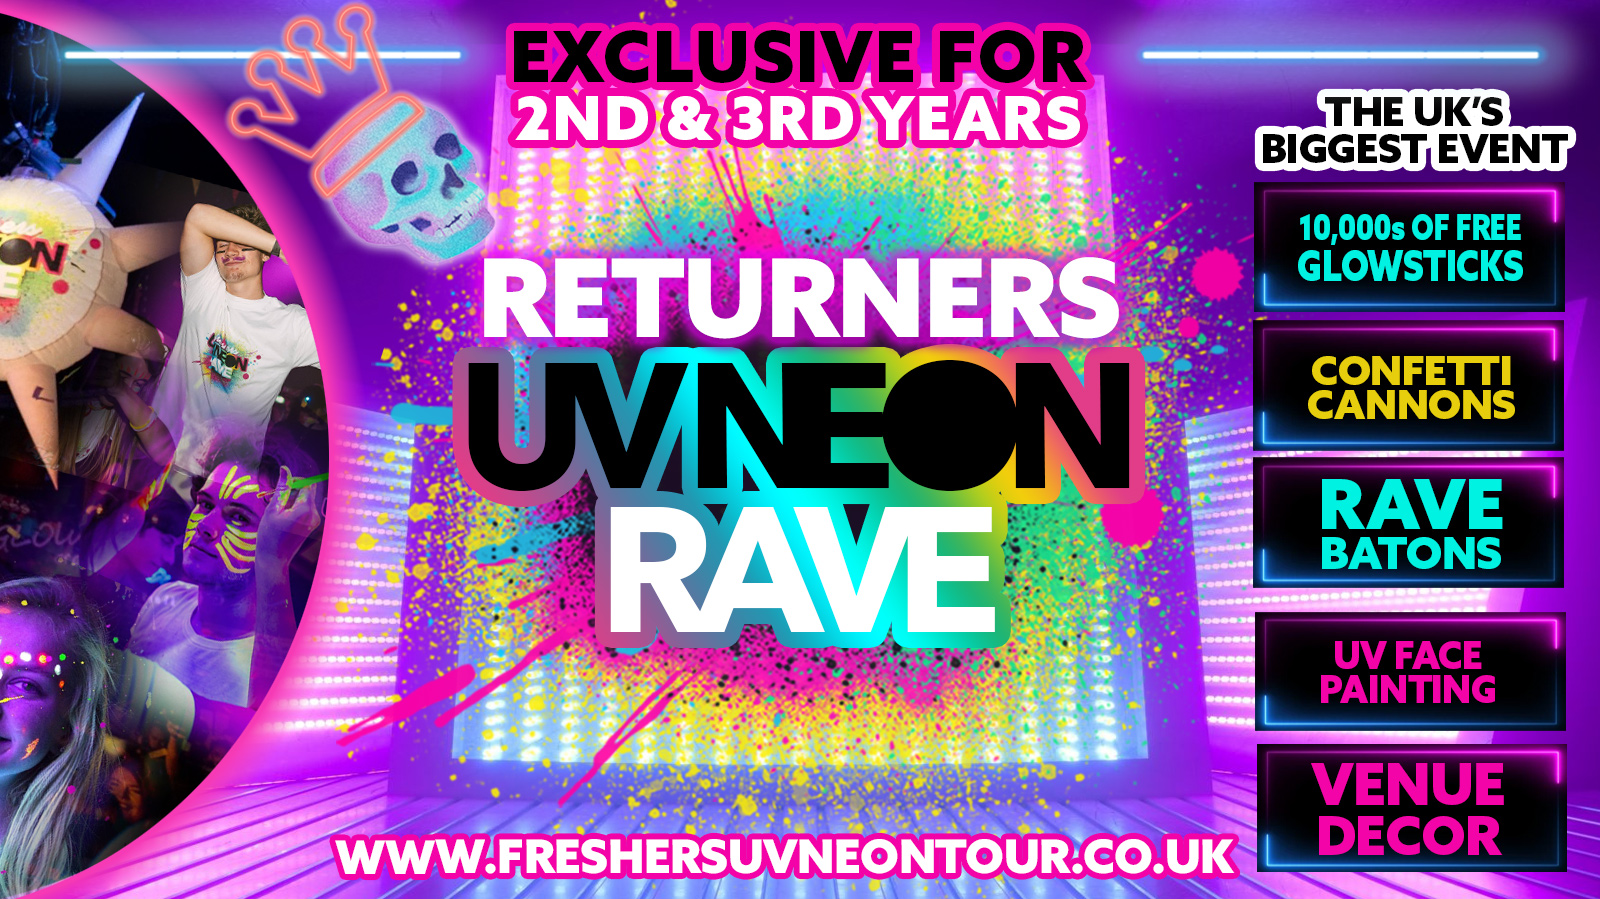 Hull Returners UV Neon Rave | Exclusive for 2nd & 3rd Years